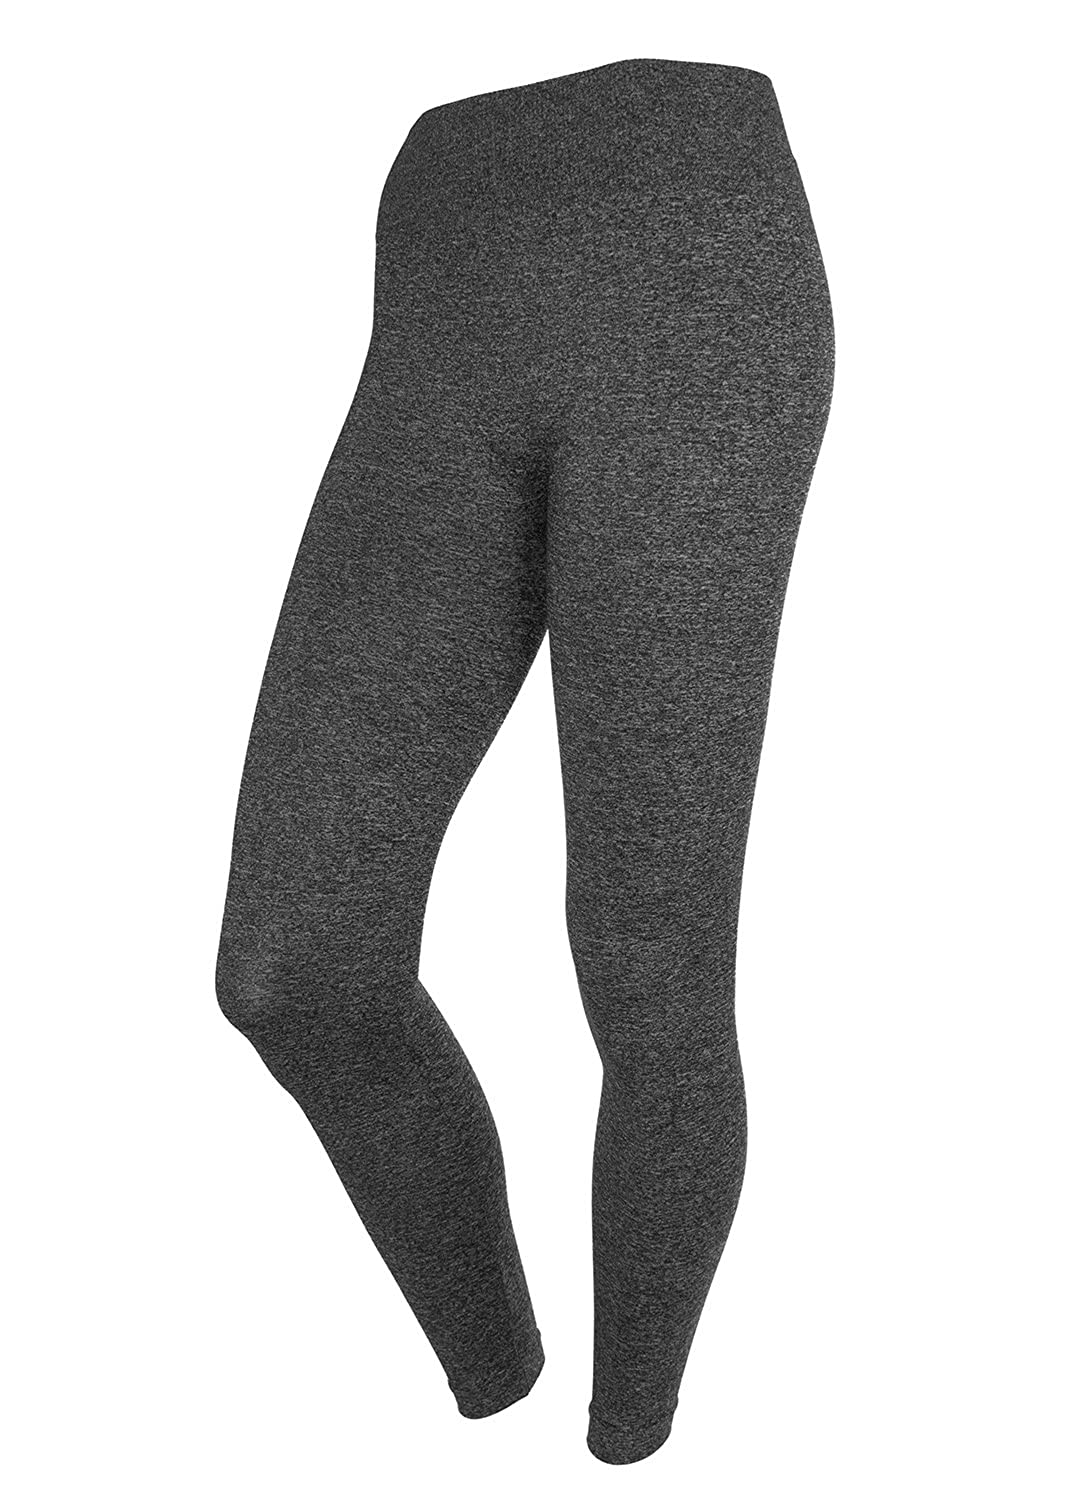 0e783801220314 Malva Womens Black Leggings Seamless Stretchy Spandex Pants with Wide  Waistband available in colors Black Navy Blue Dark Red Grey